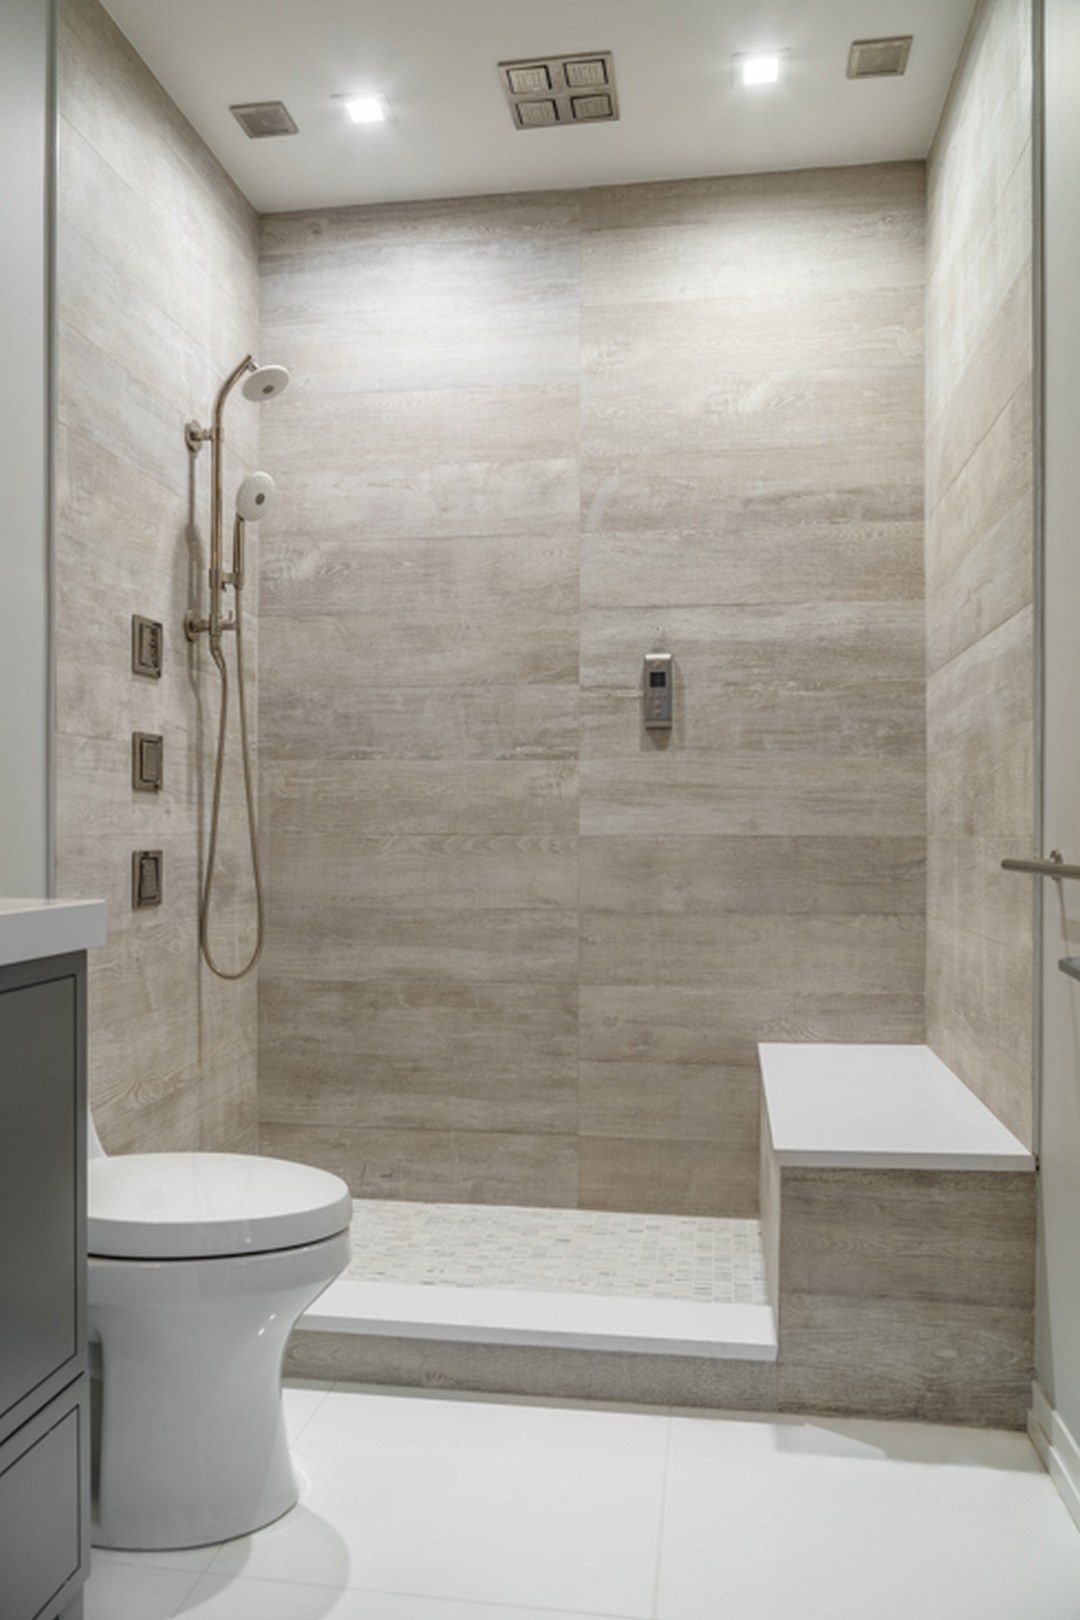 tiles inspire will that walk tile services in sebring shower remodeling ideas you home